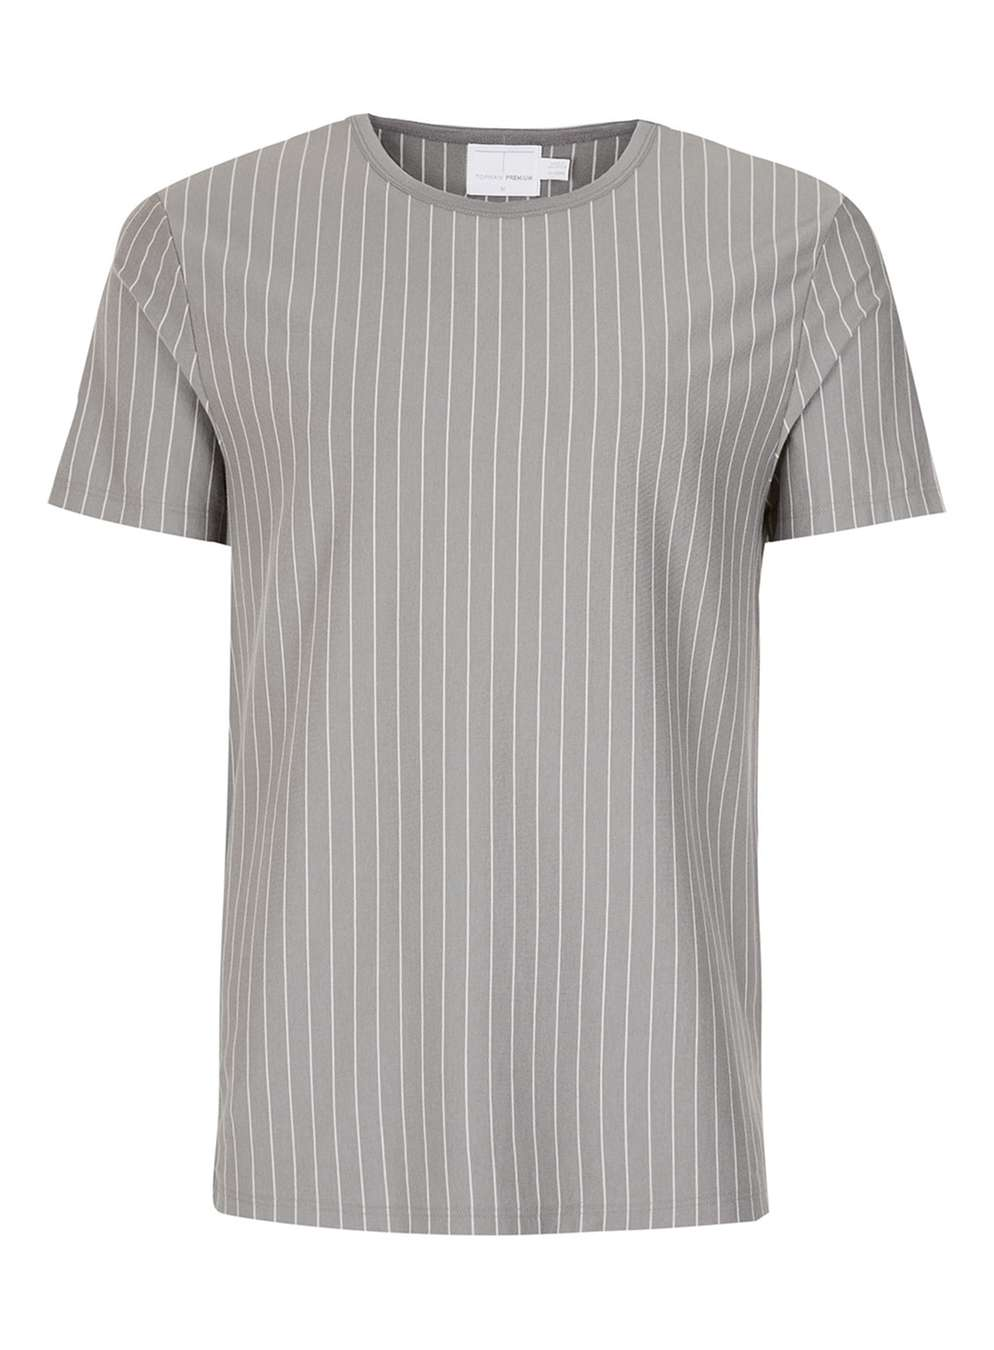 TOPMAN PREMIUM Grey Stripe T-Shirt, £25